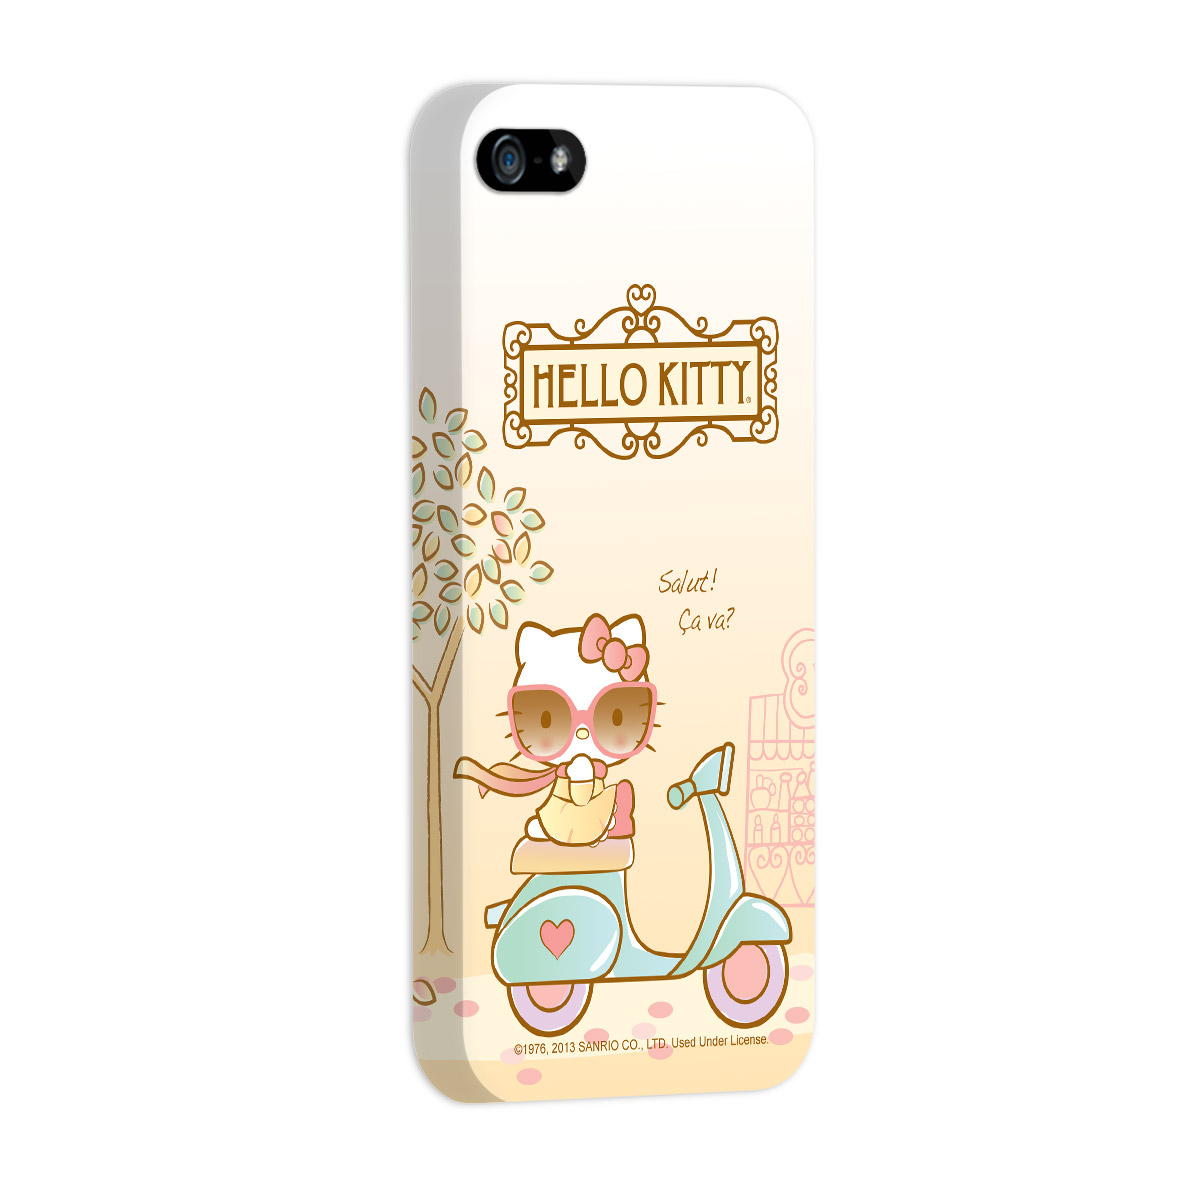 Capa de iPhone 5/5S Hello Kitty Salut! Ça Va?